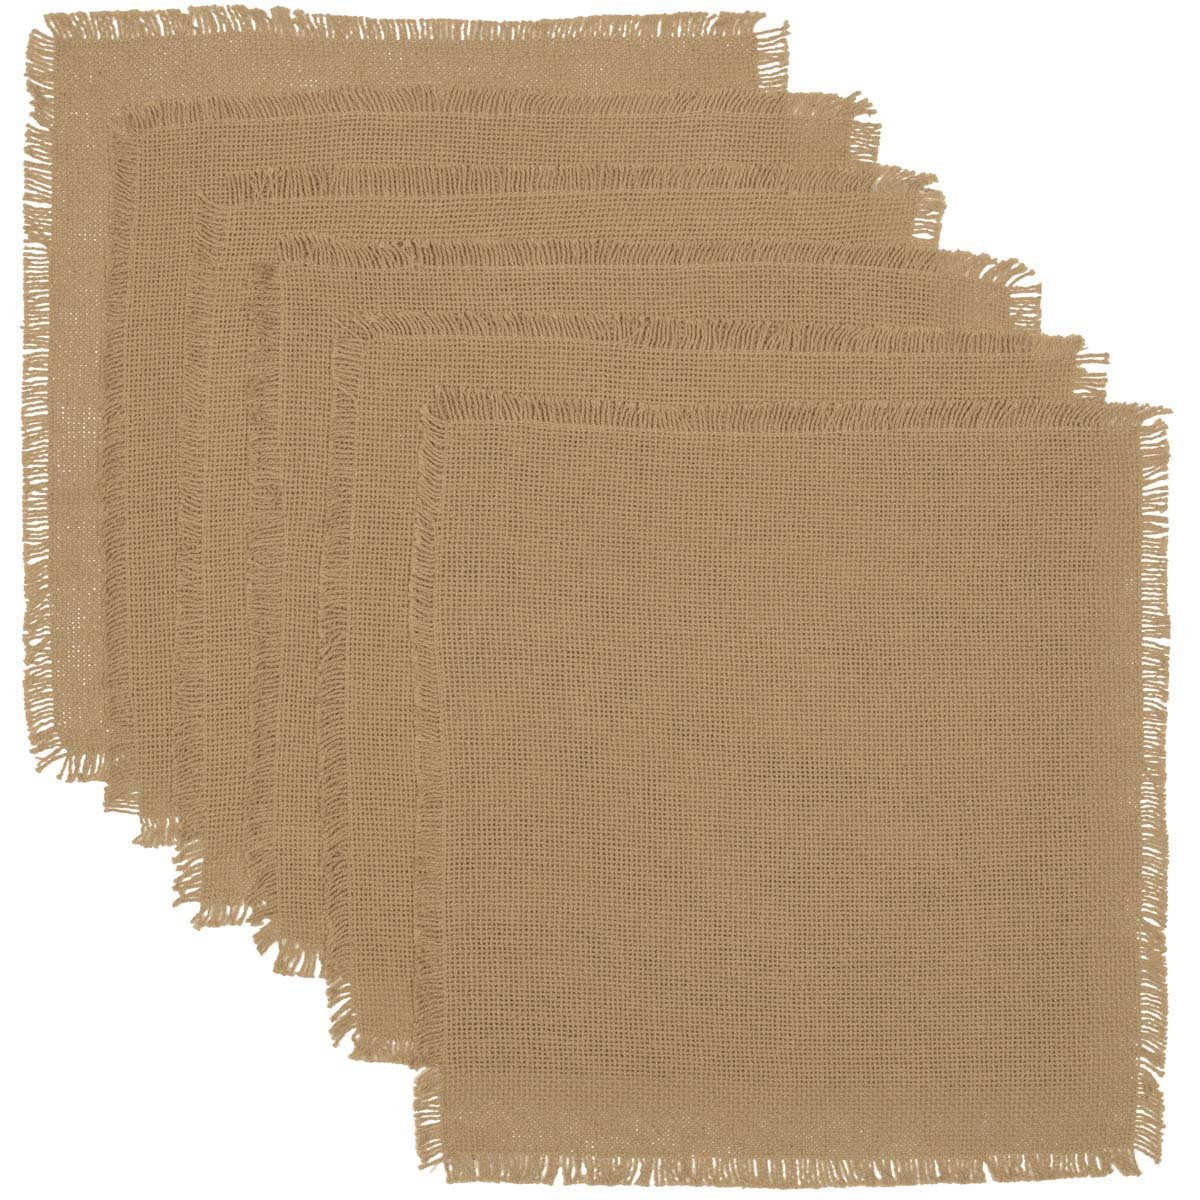 VHC Brands Classic Country Farmhouse Tabletop & Kitchen-Burlap Natural Tan Fringed Tablemat Set of 6, 13'' x 13''